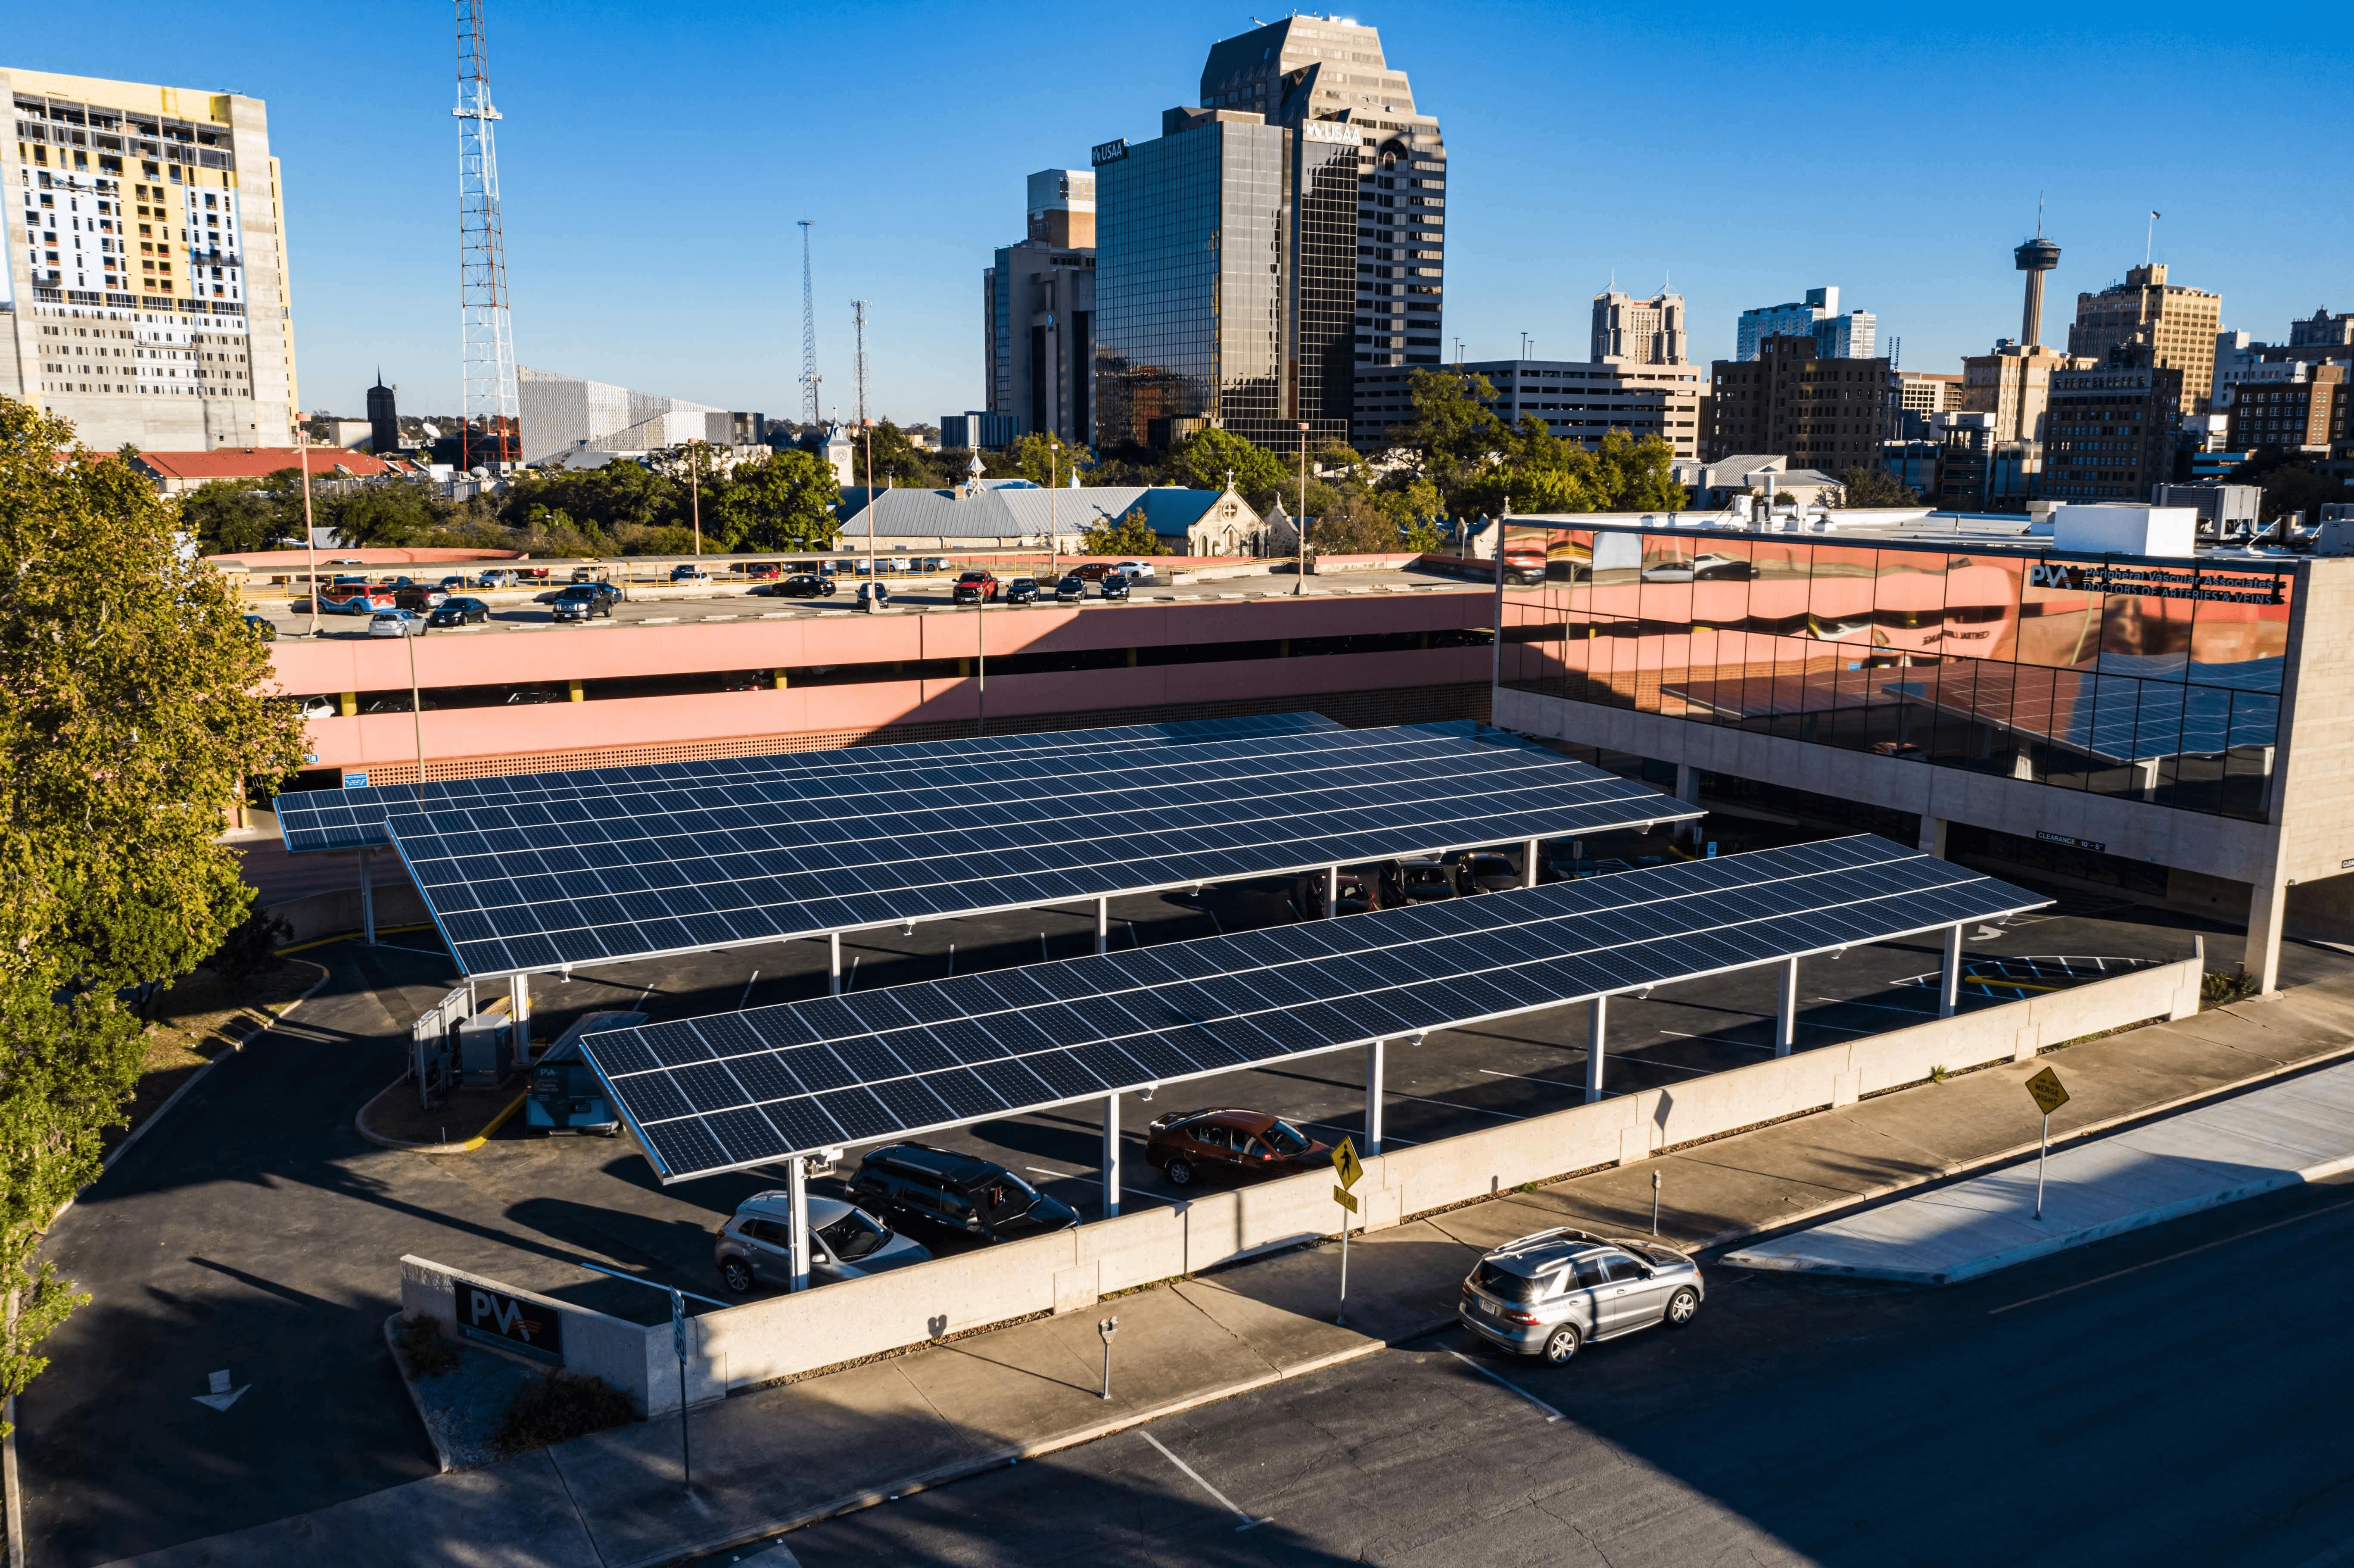 CPS Energy partnering with local firm to build solar carports around town